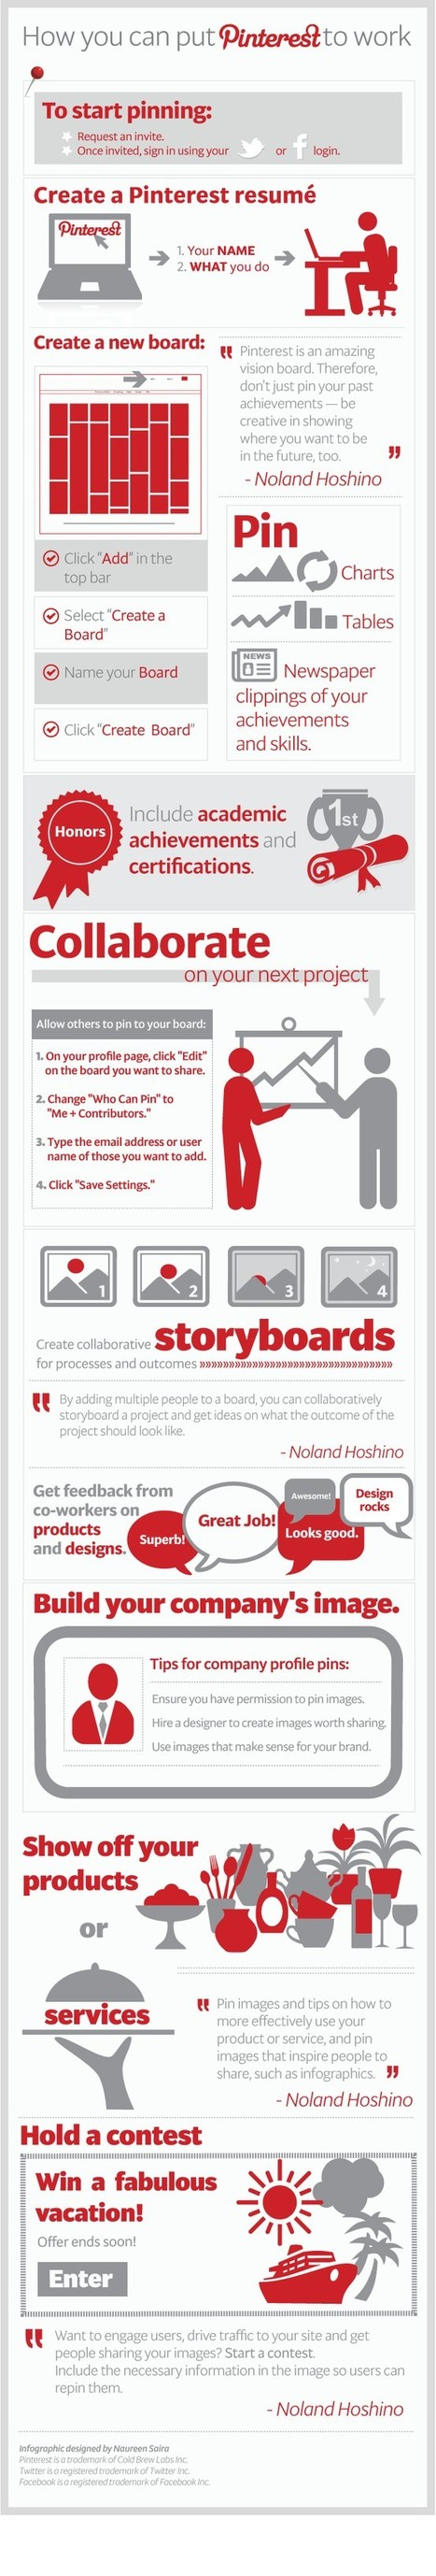 Pinterest / How you can put Pinterest to work #infographic   Pinterest   Scoop.it